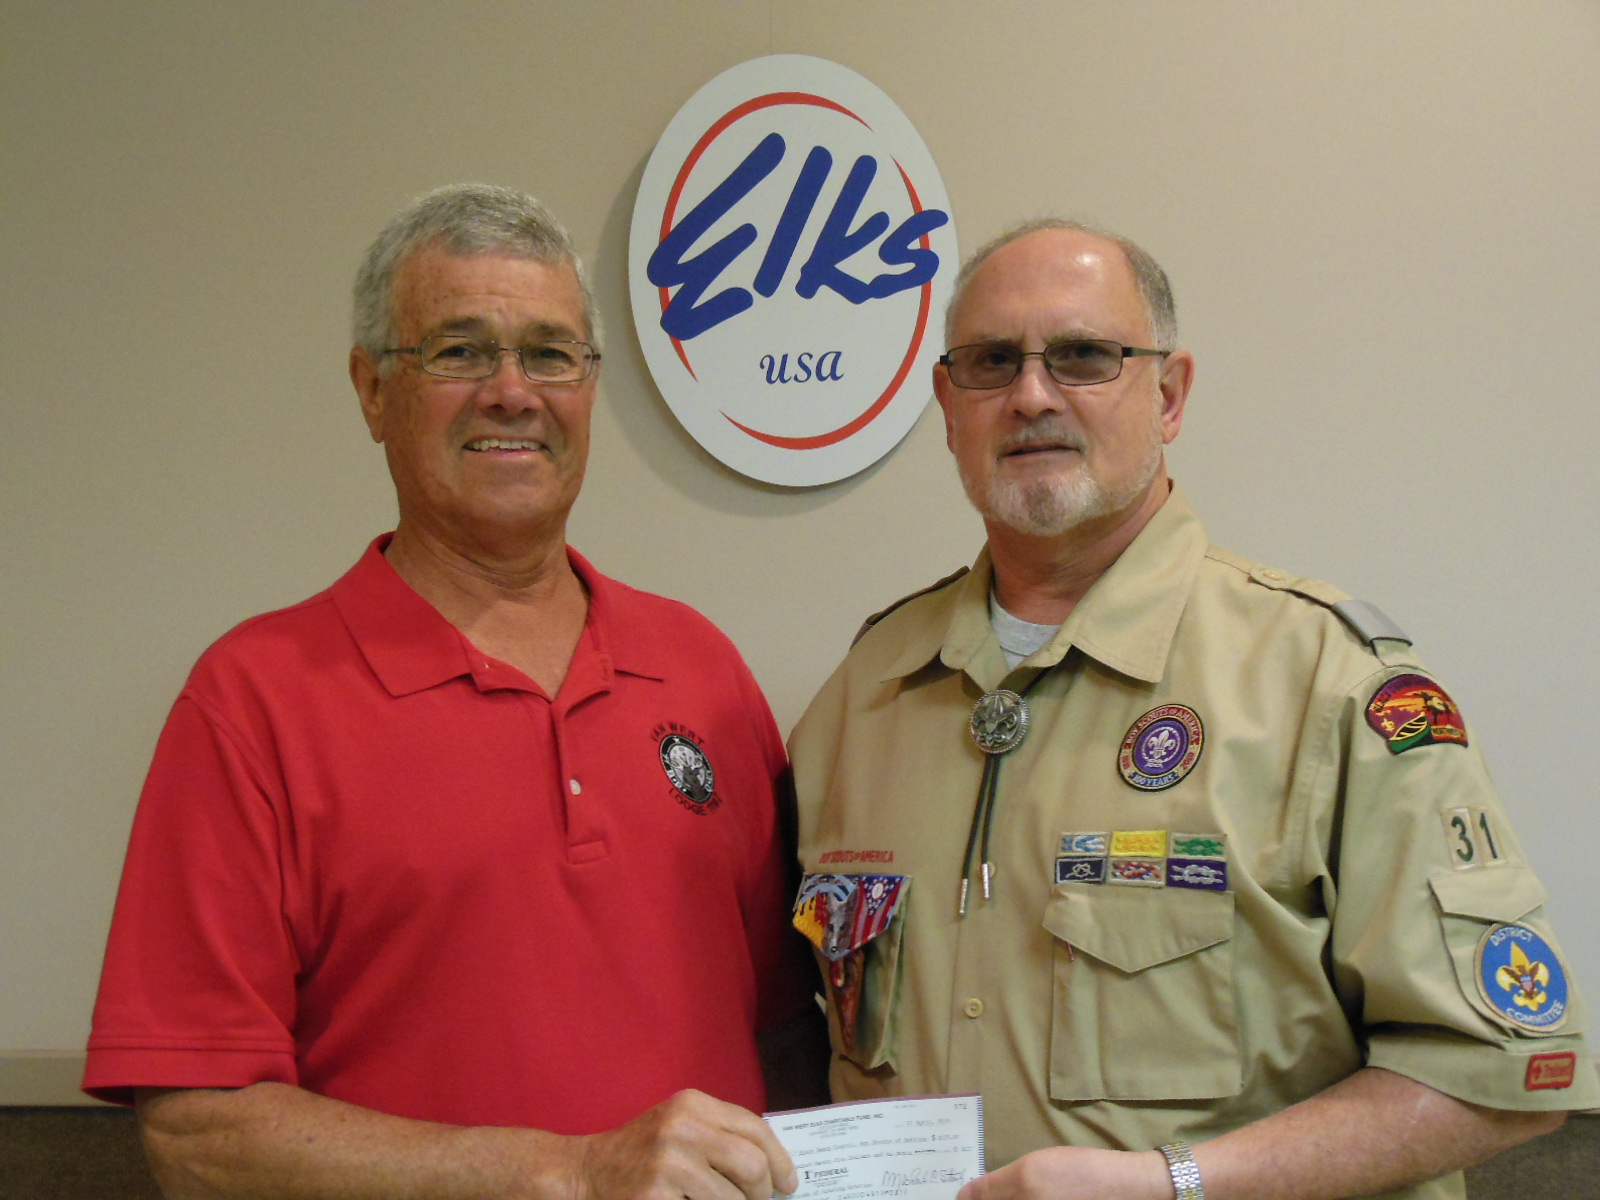 Pictured are: Greg Amstutz from the Black Swamp Council accepting the check from Lodge Chaplain Larry Miller.